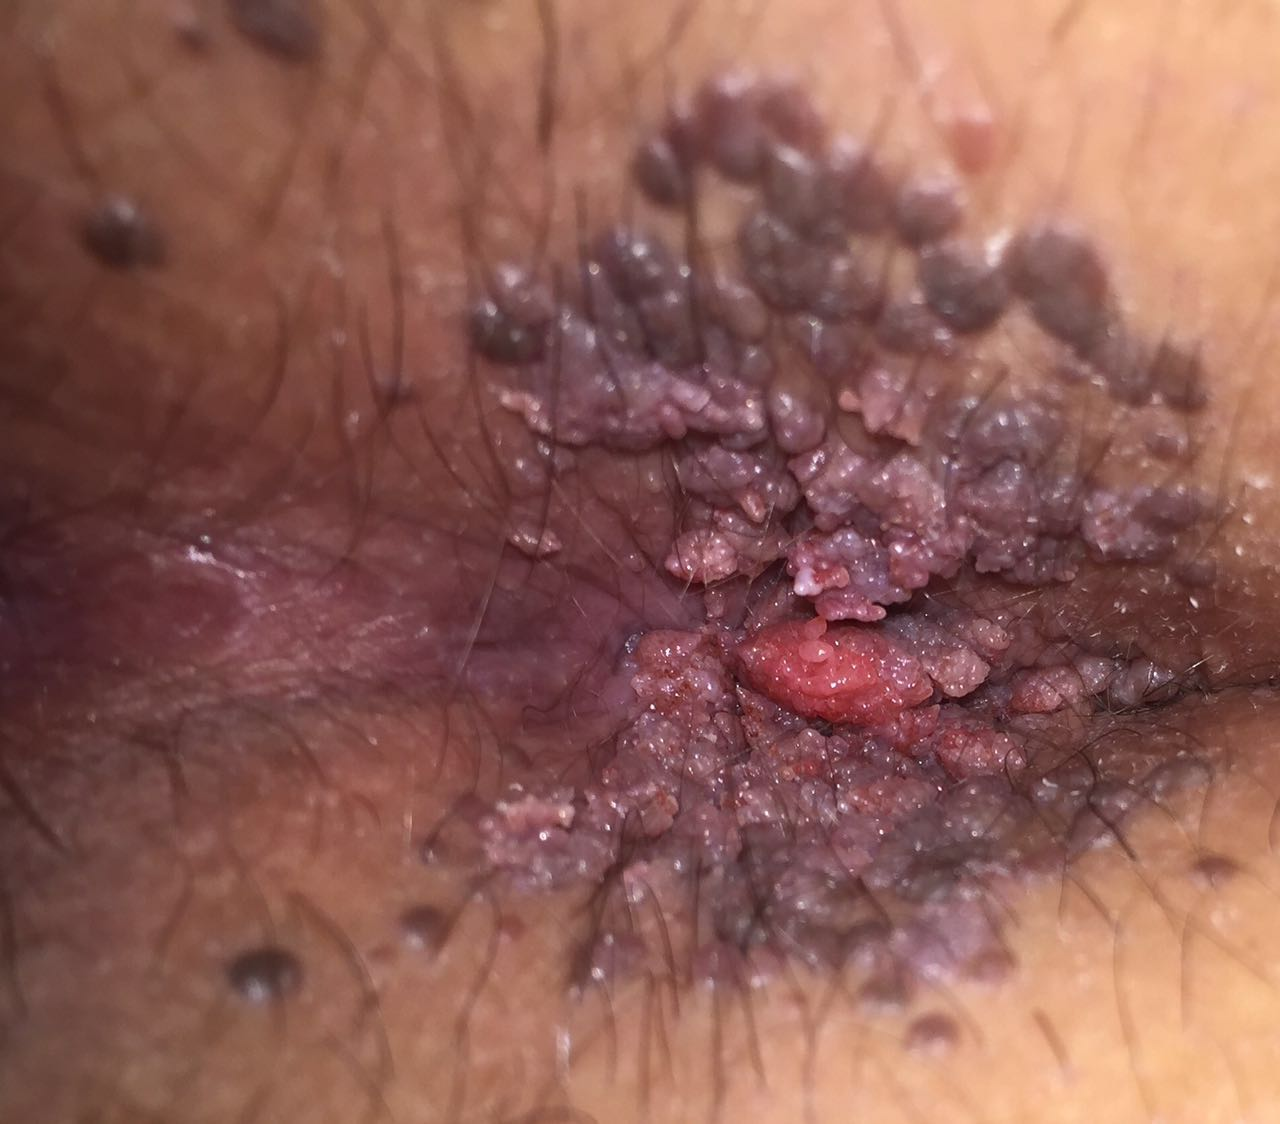 anal warts  befor treatment2